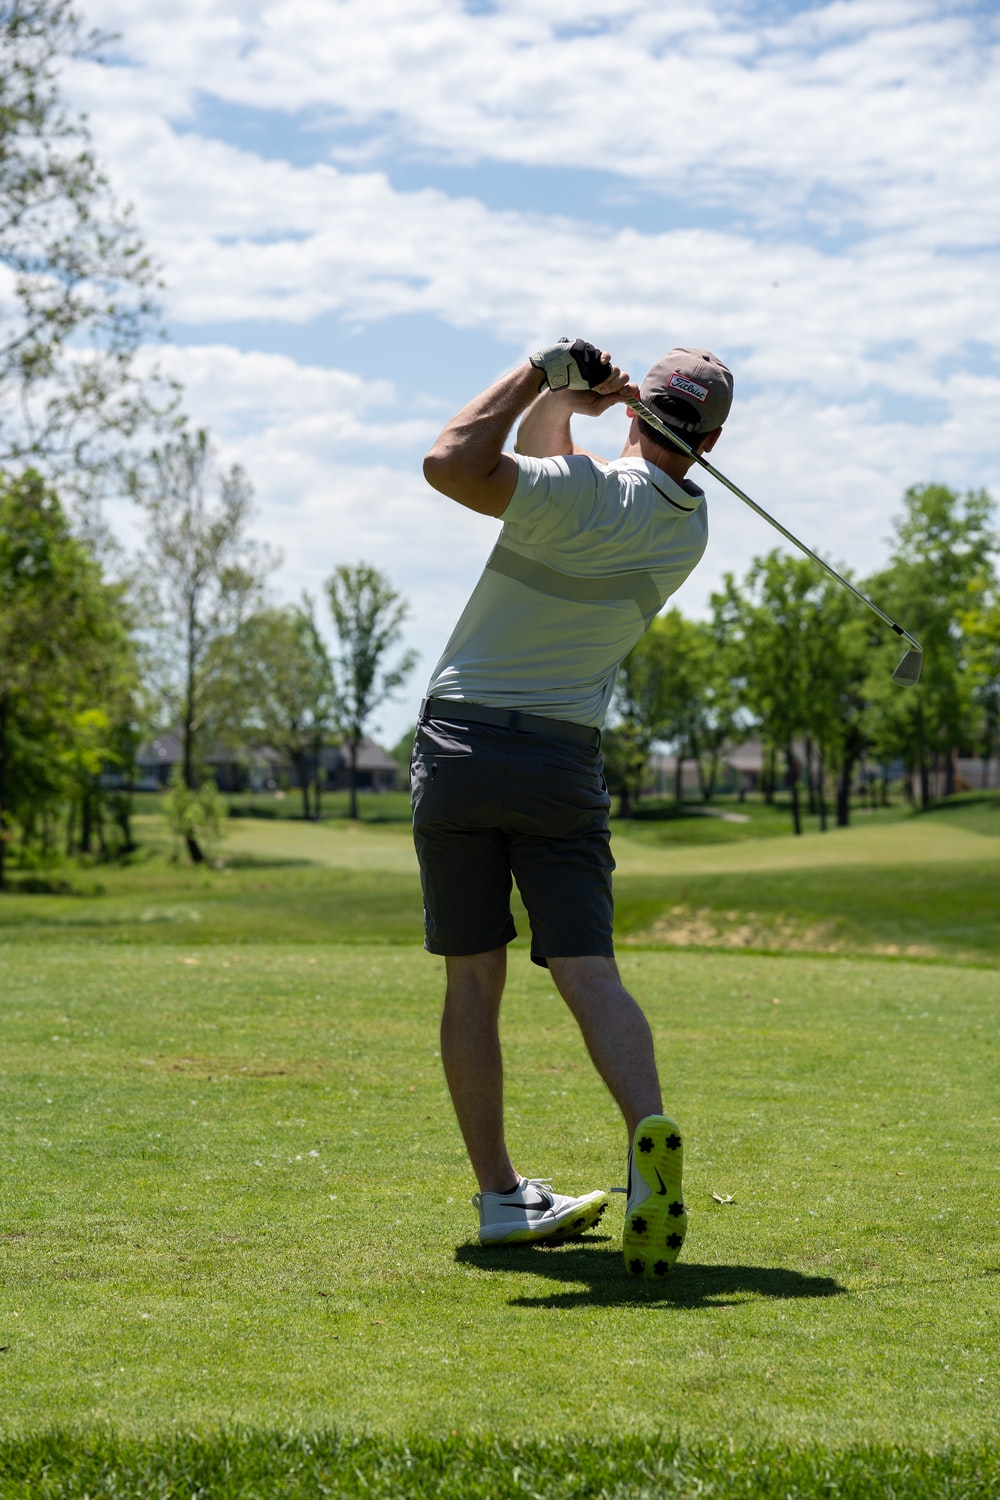 man in white t-shirt and black shorts holding golf club